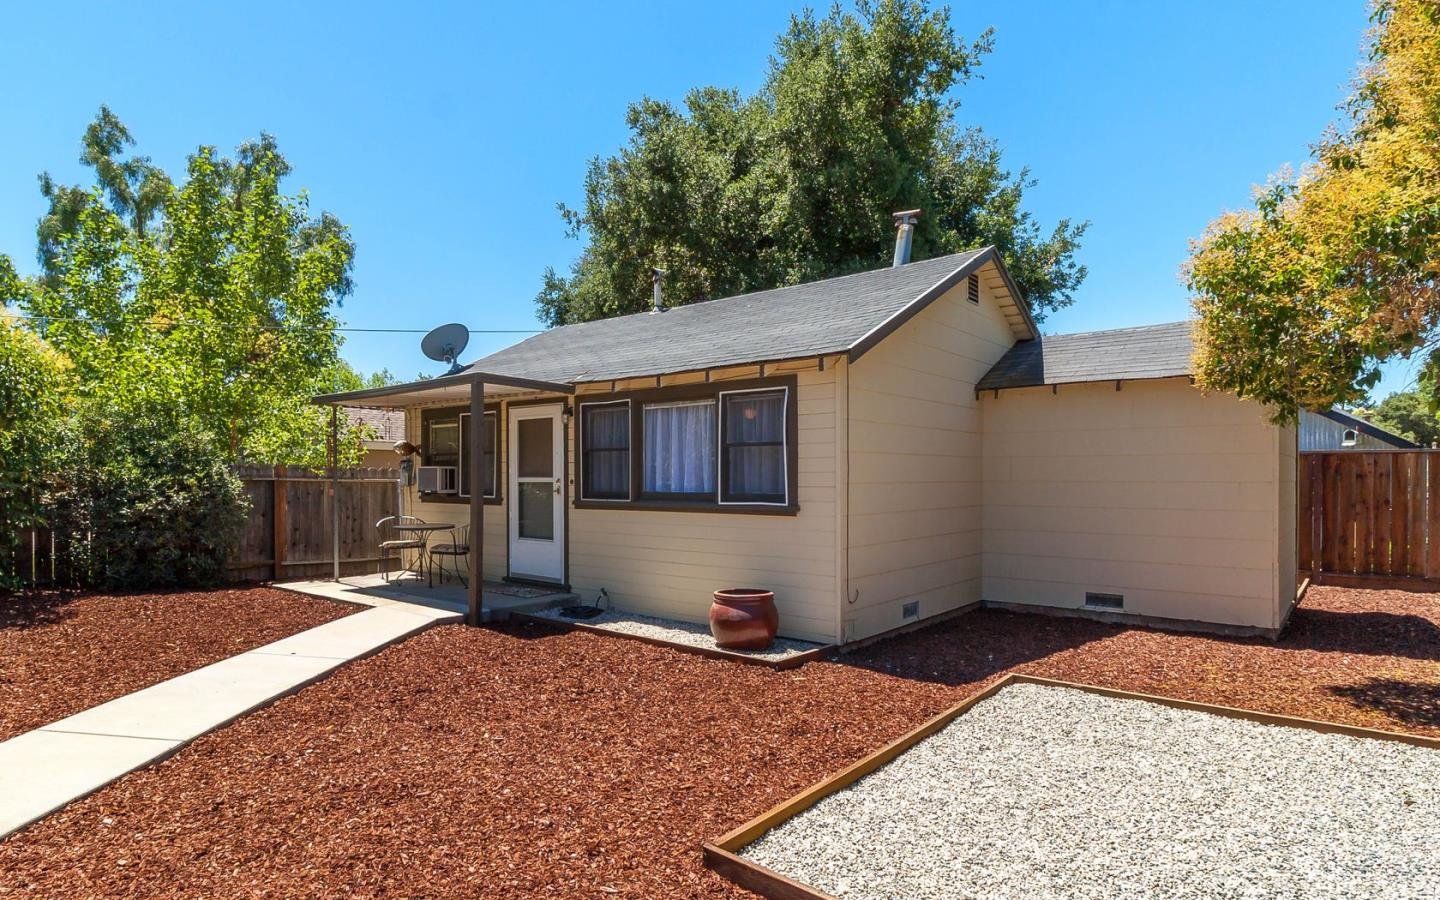 Additional photo for property listing at 843 S H Street  Livermore, California 94550 United States